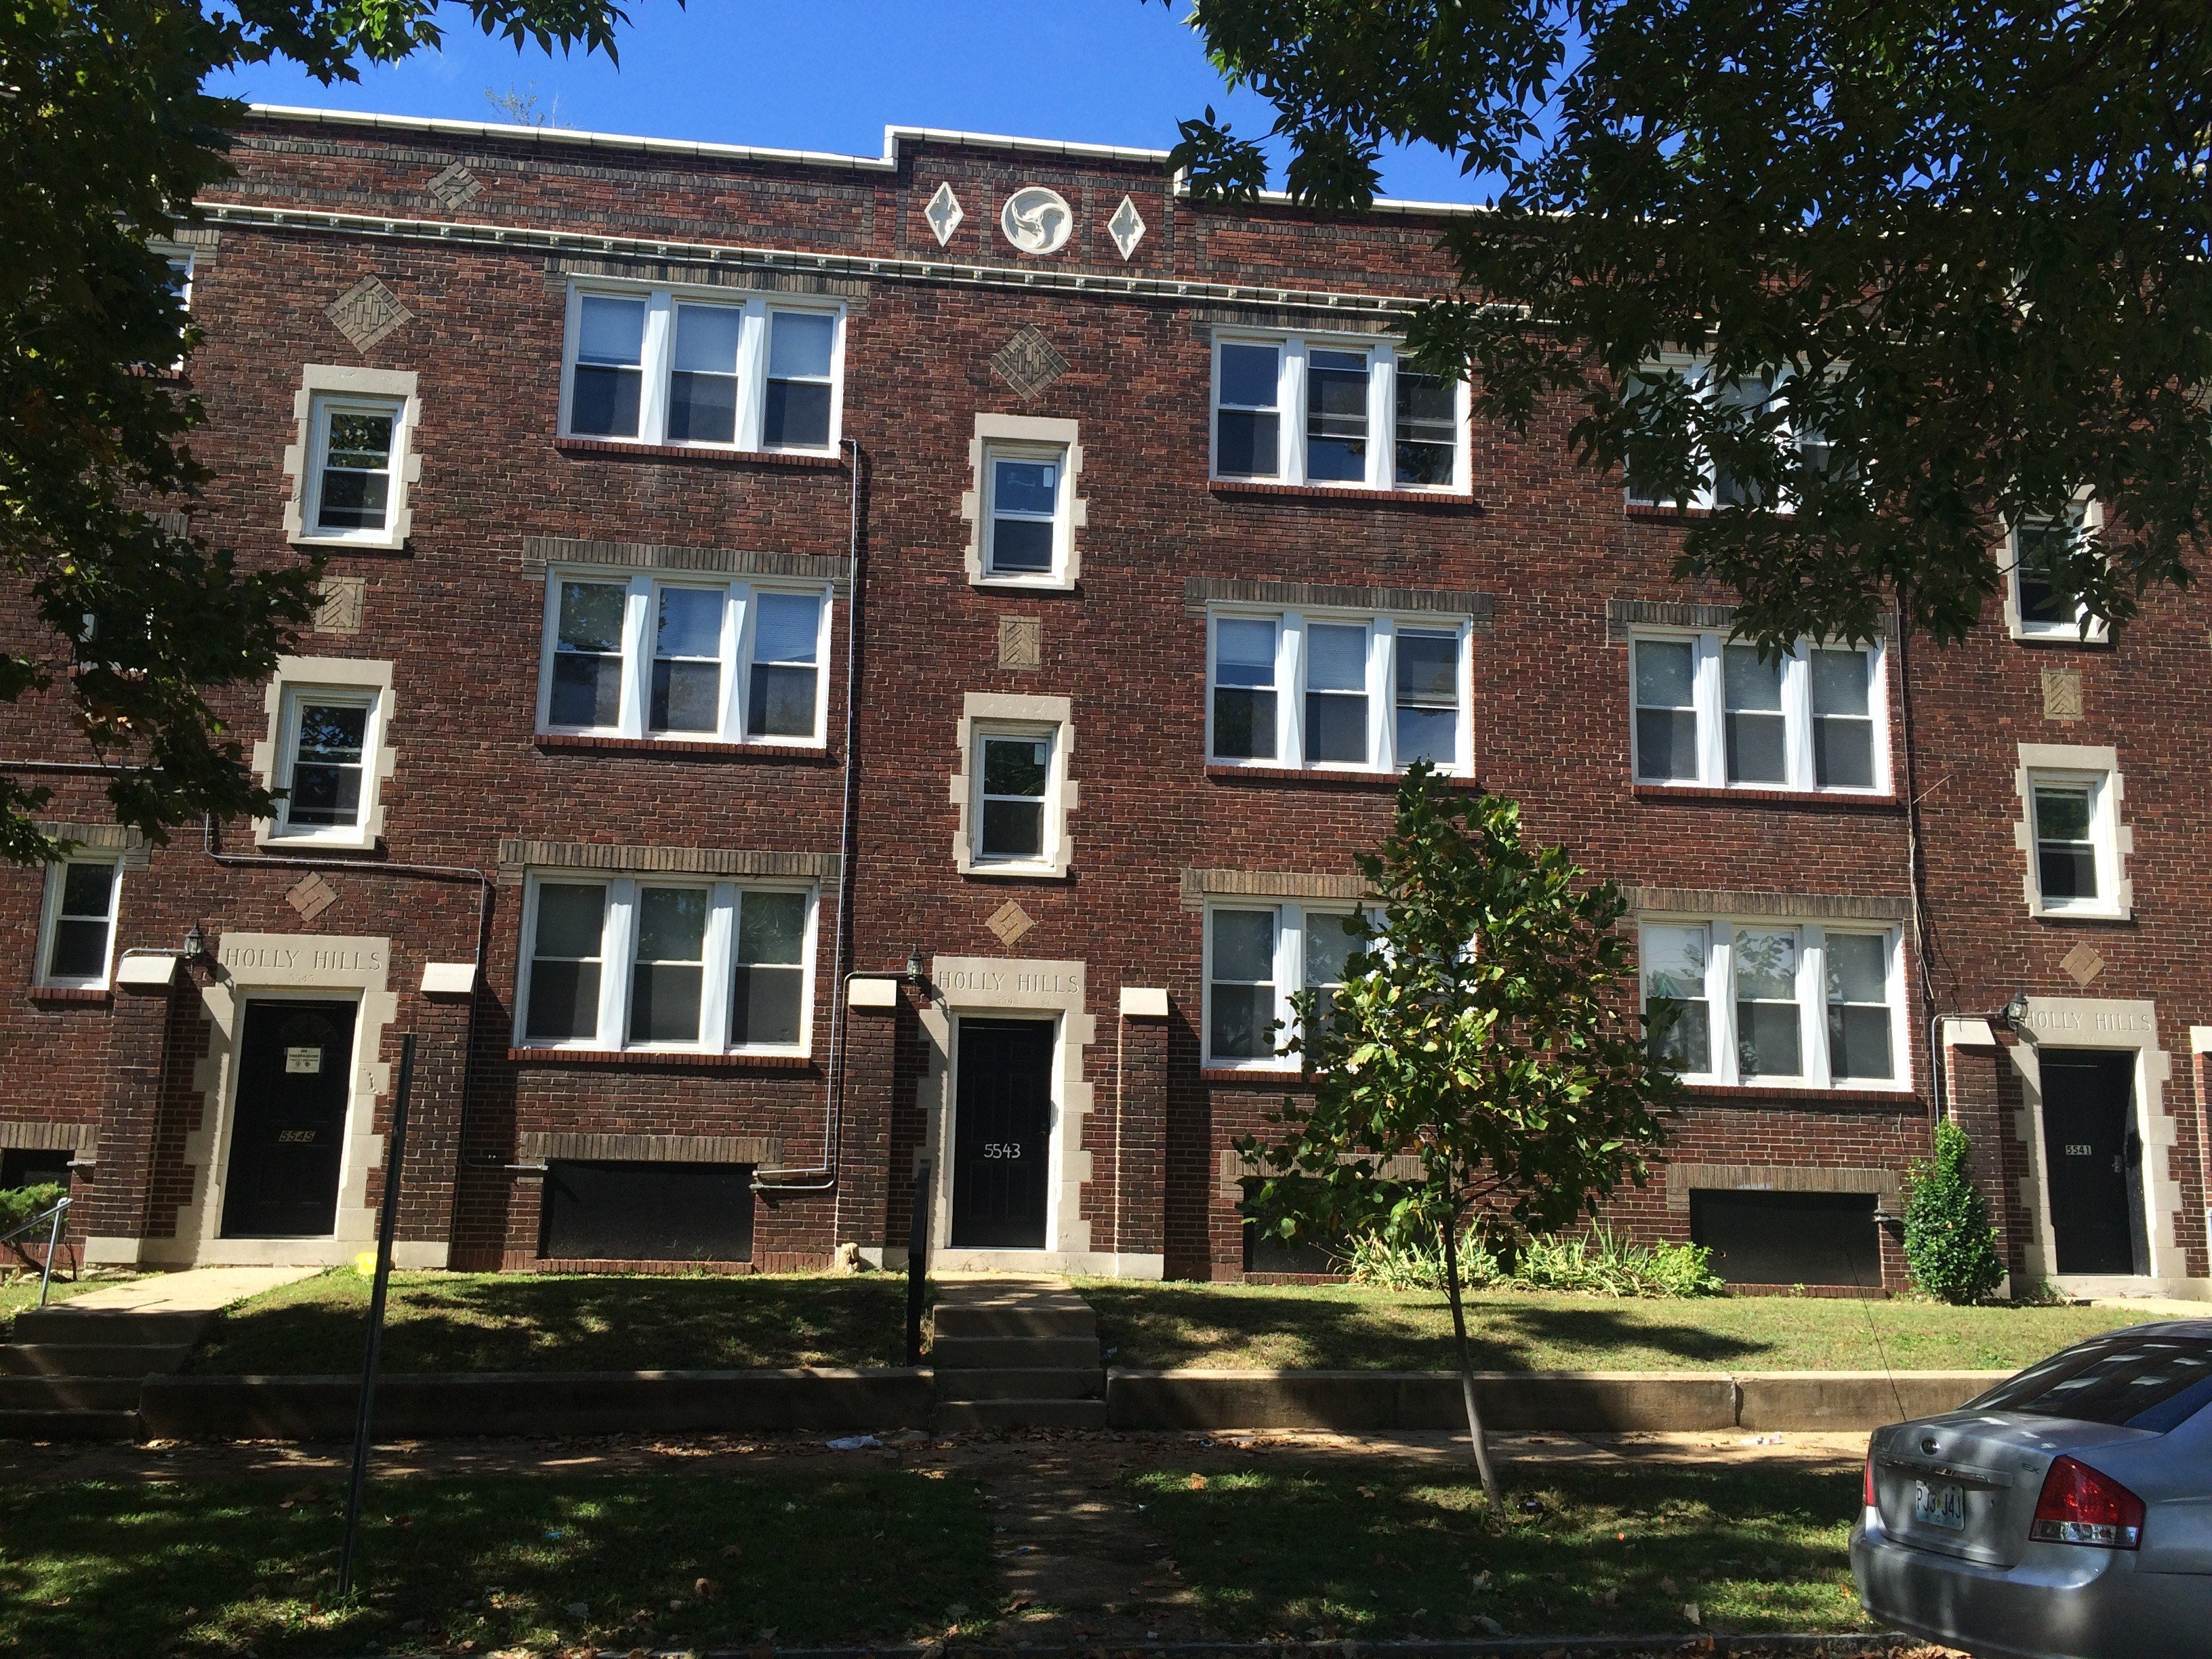 Best Bates Ave Apartments All Electric One Bedrooms Available St Louis Apartment Rentals With Pictures